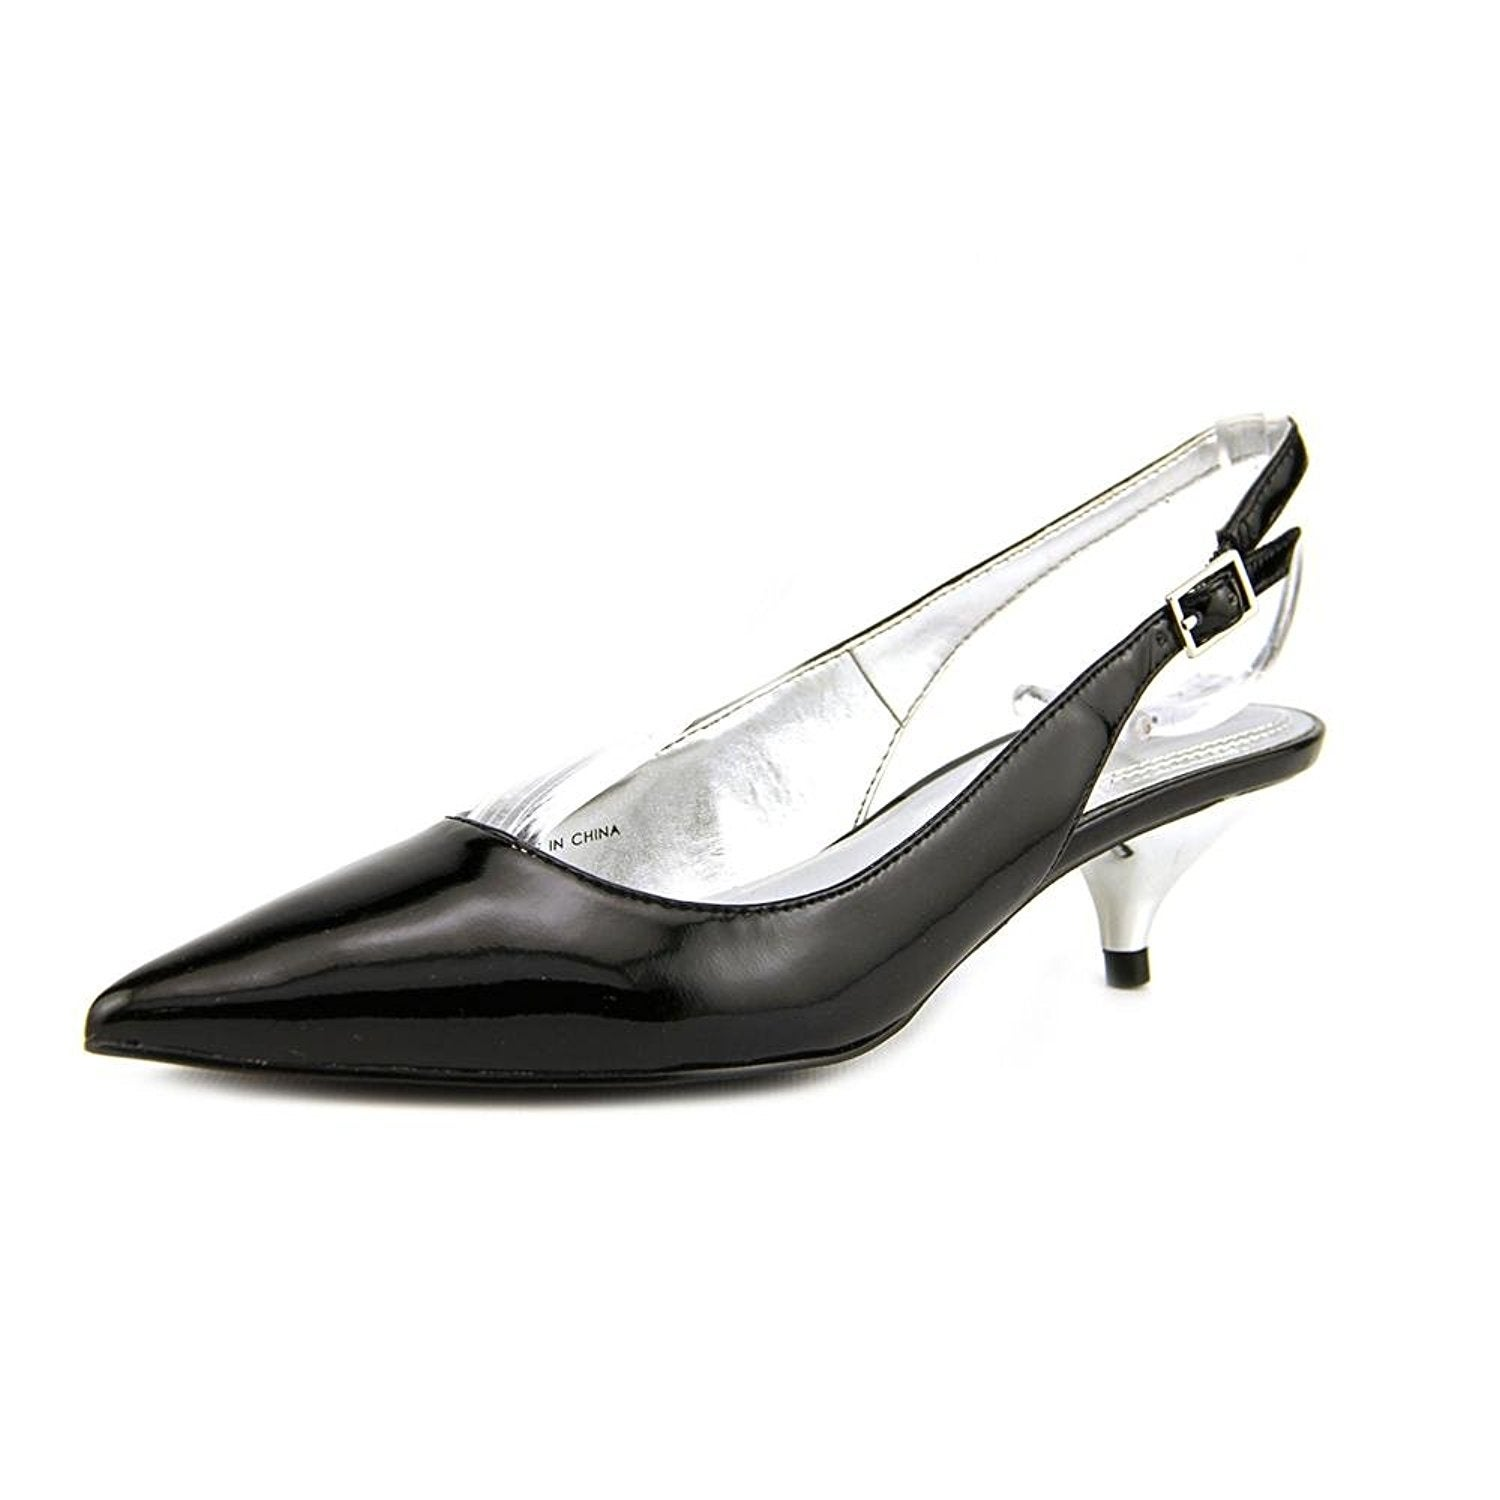 d04676c4cb4 Shop Tahari Women s Faye Pump - Free Shipping On Orders Over  45 -  Overstock - 14525518